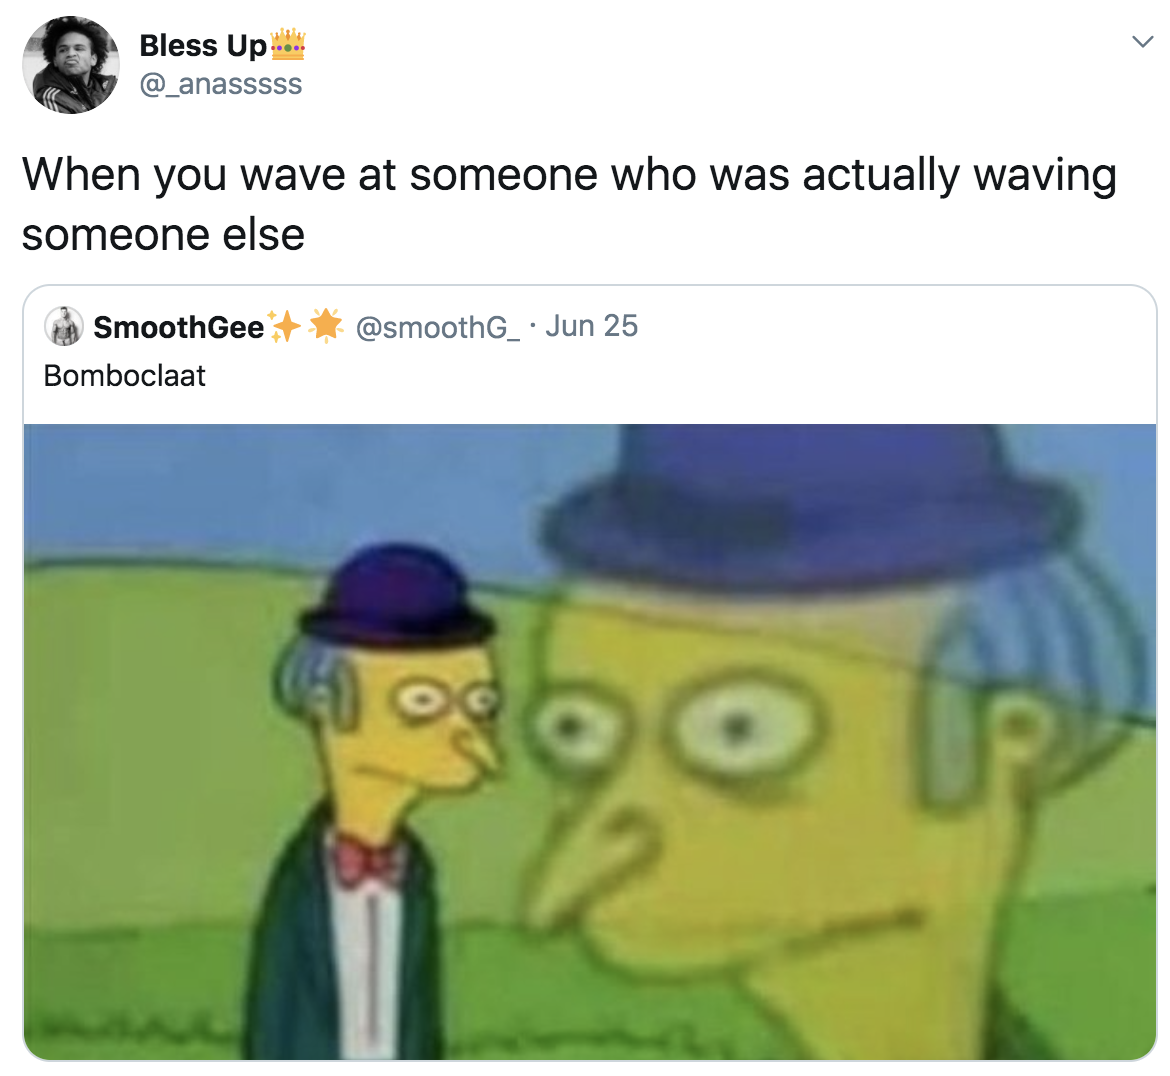 """Cartoon character looking flustered with the caption """"When you wave at someone who was actually waving at someone else"""""""